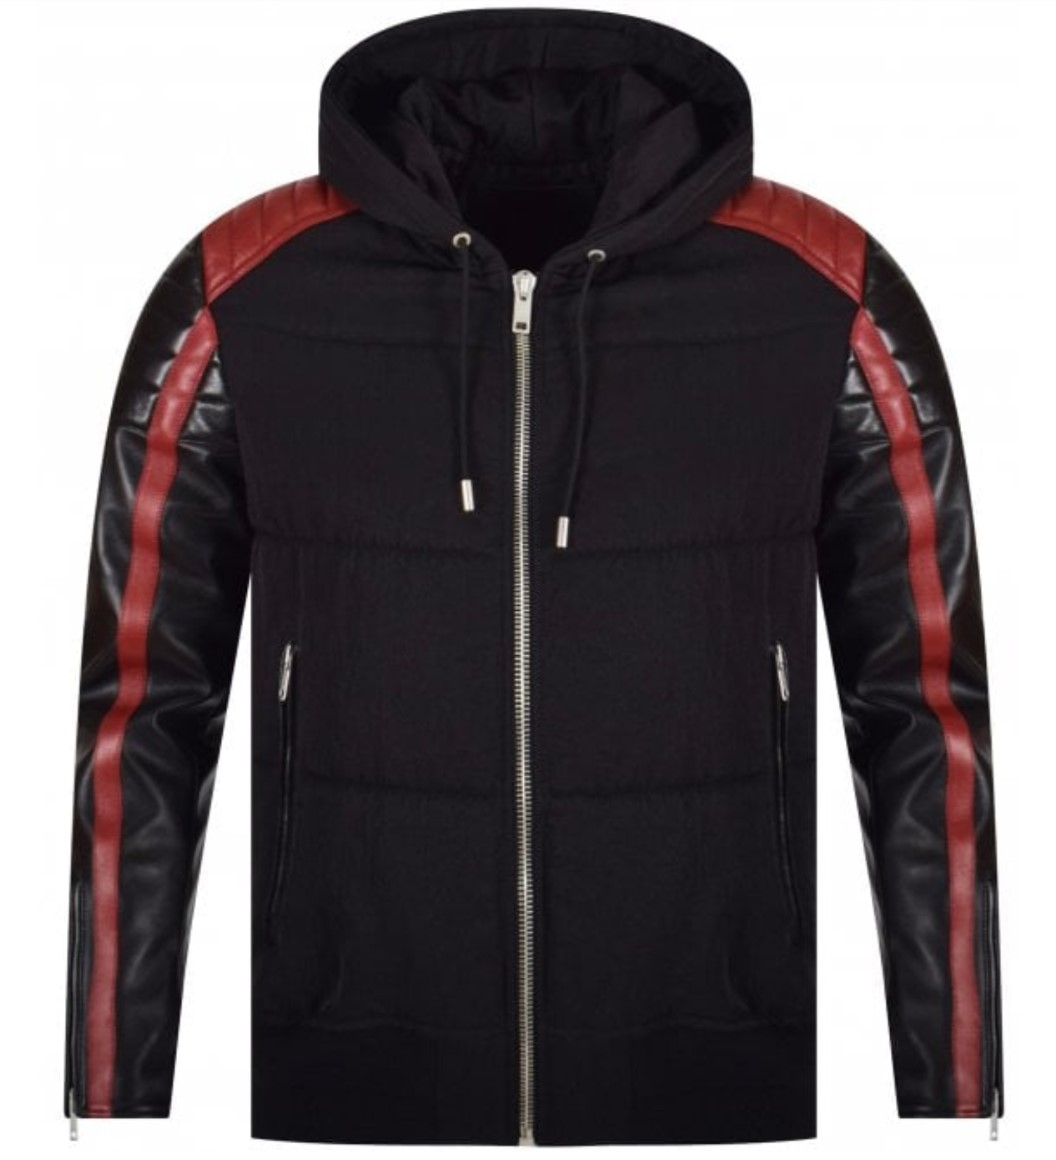 givenchy black and red leather quilted jacket